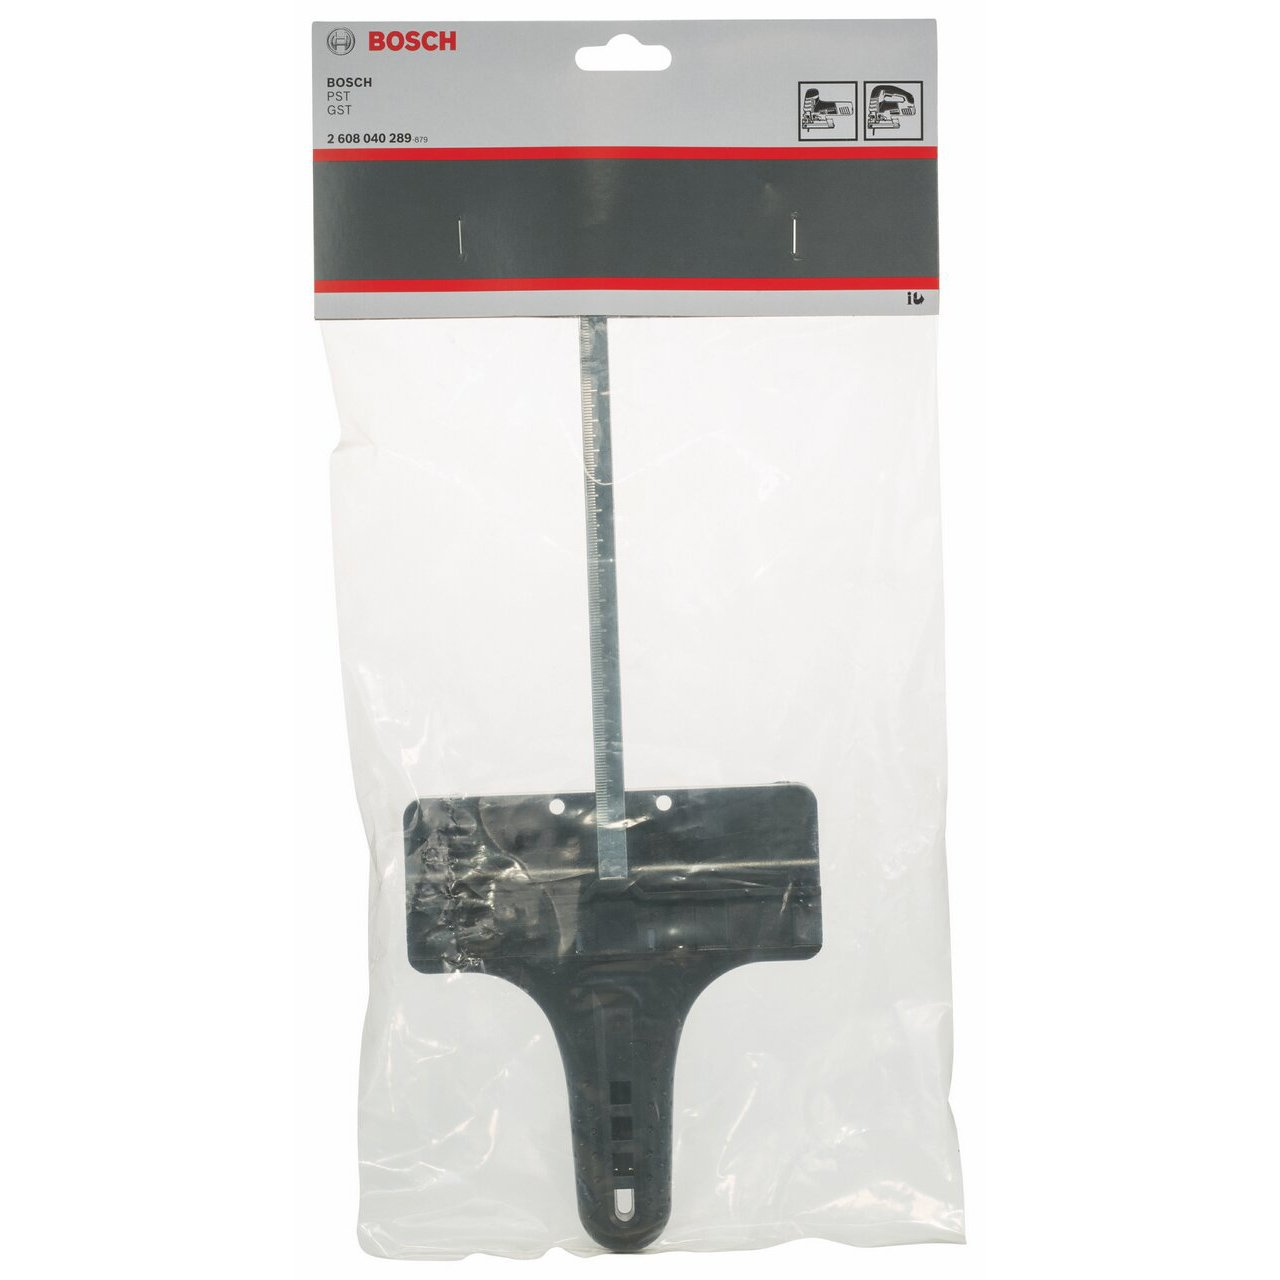 Silver//Black Bosch Professional 2608040289 Parallel Guide